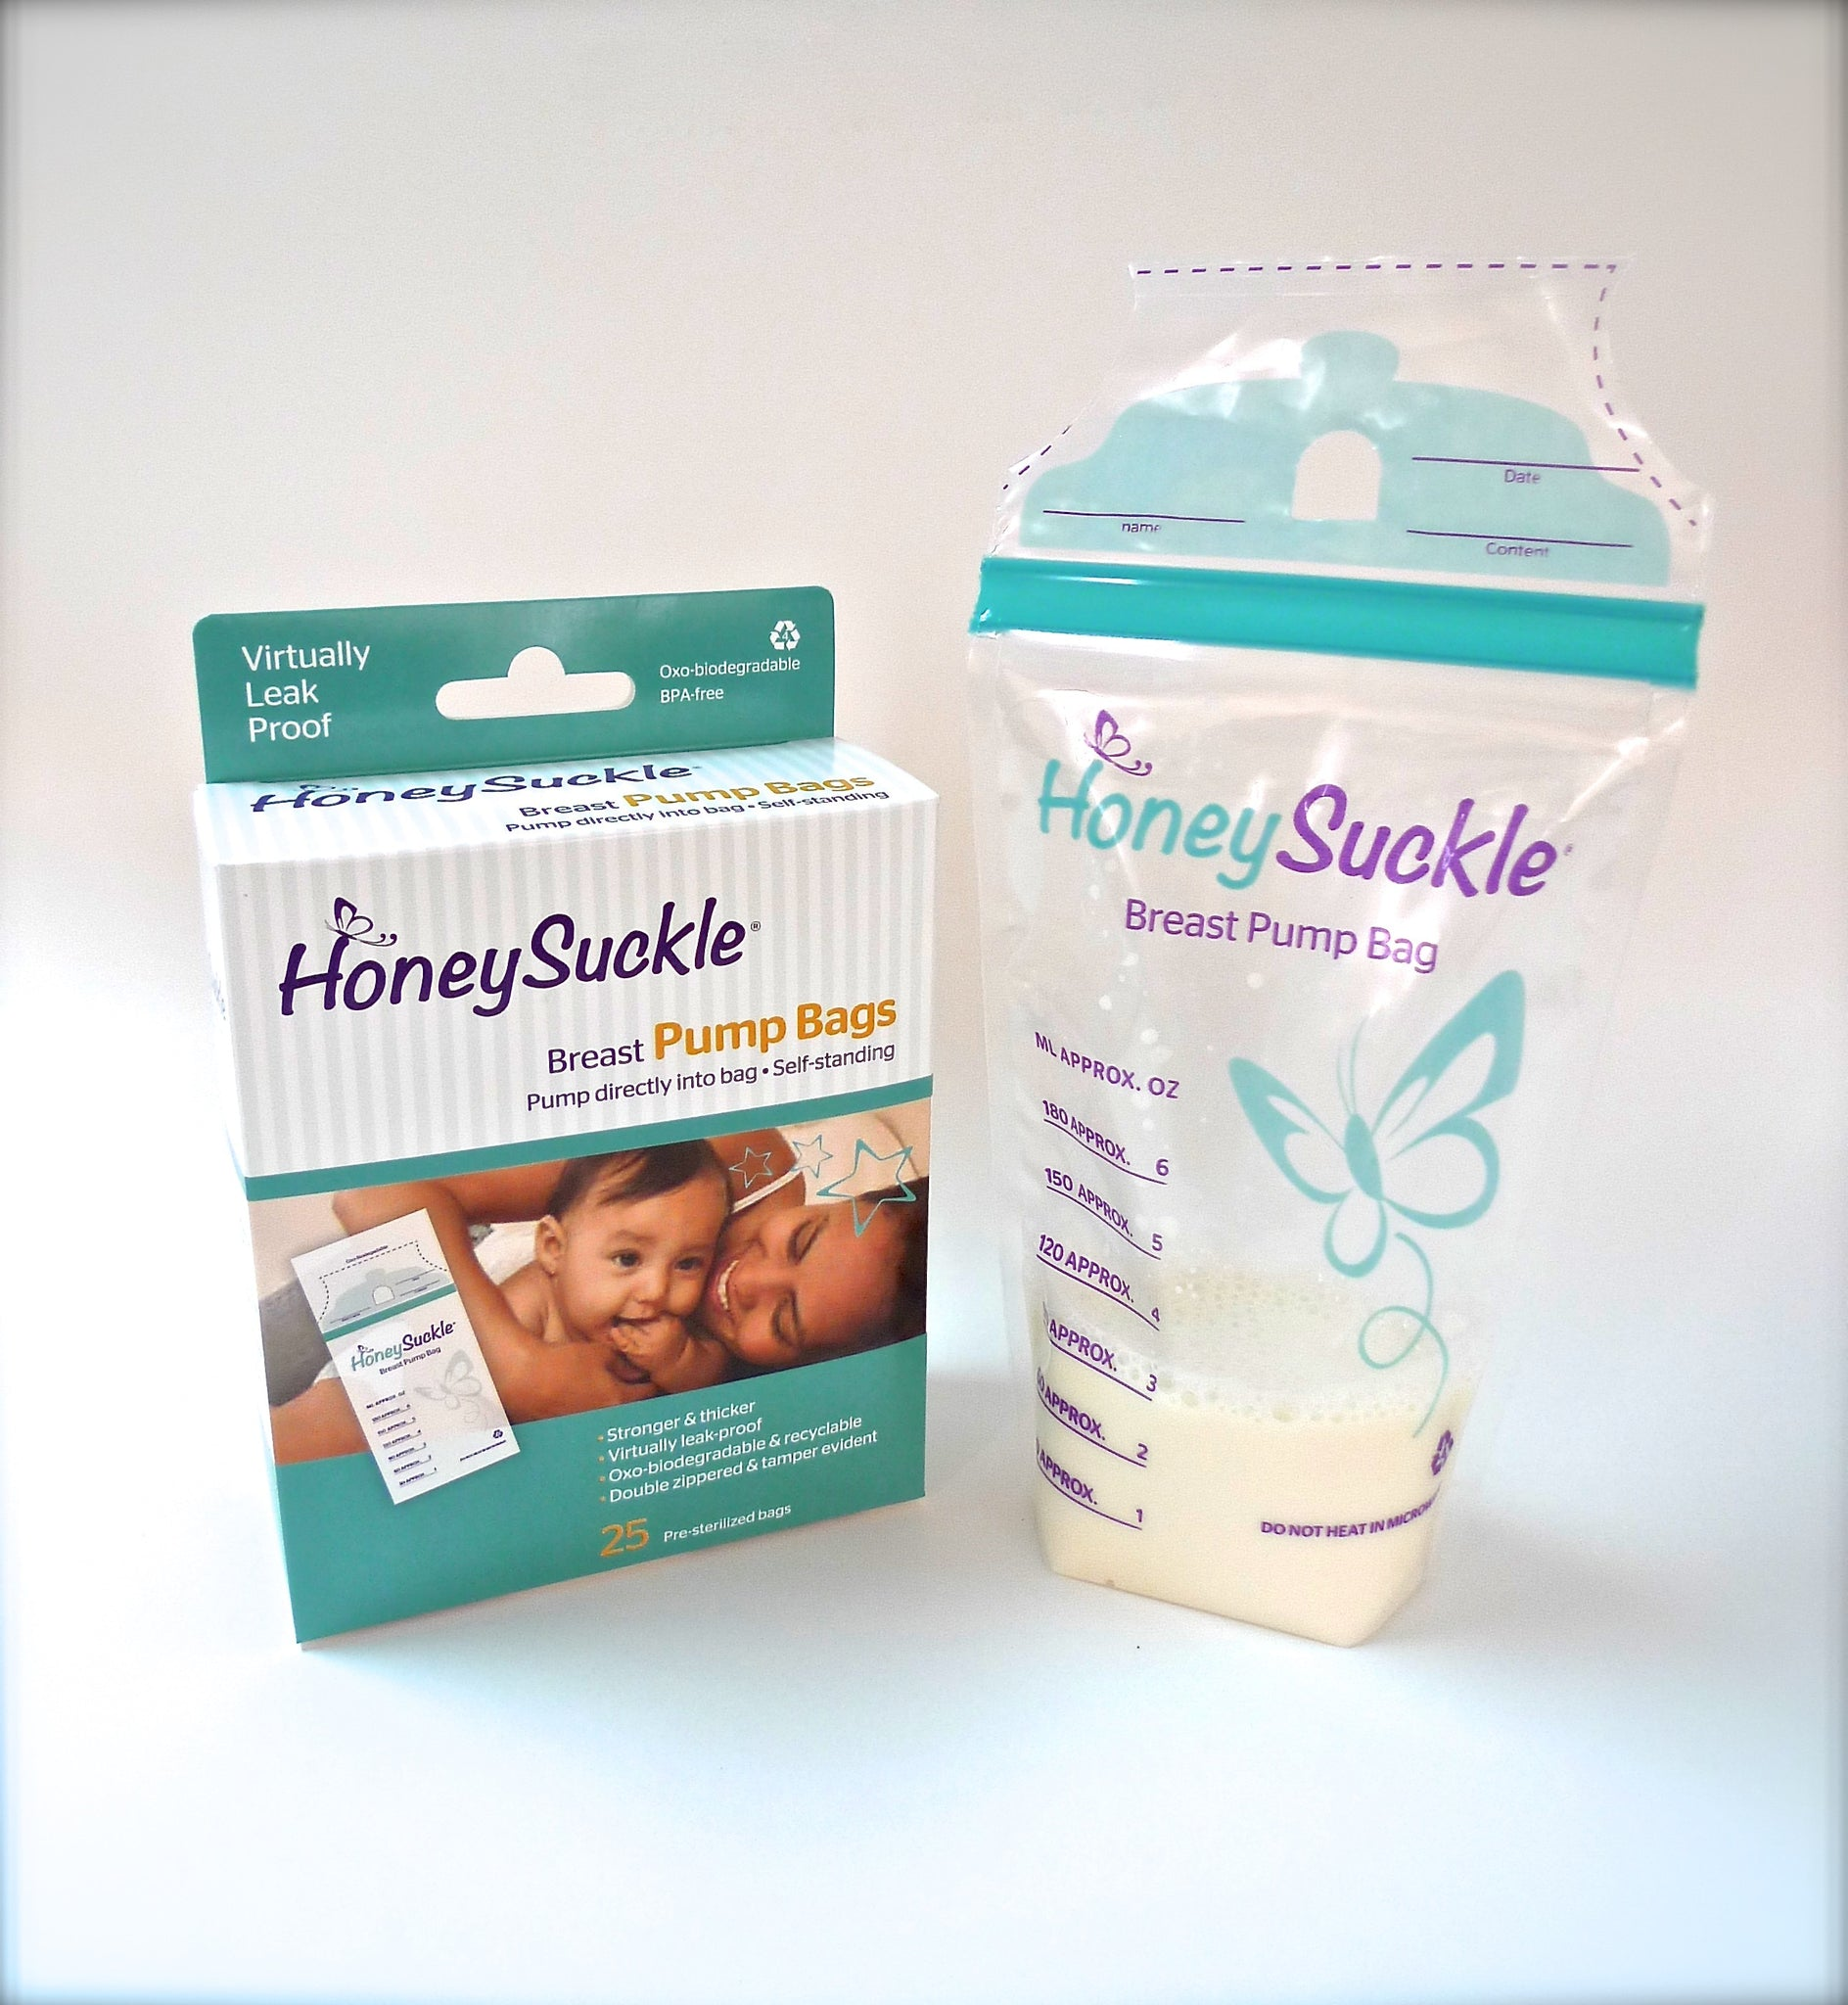 Honeysuckle Breastpump Milk Bags 6-oz